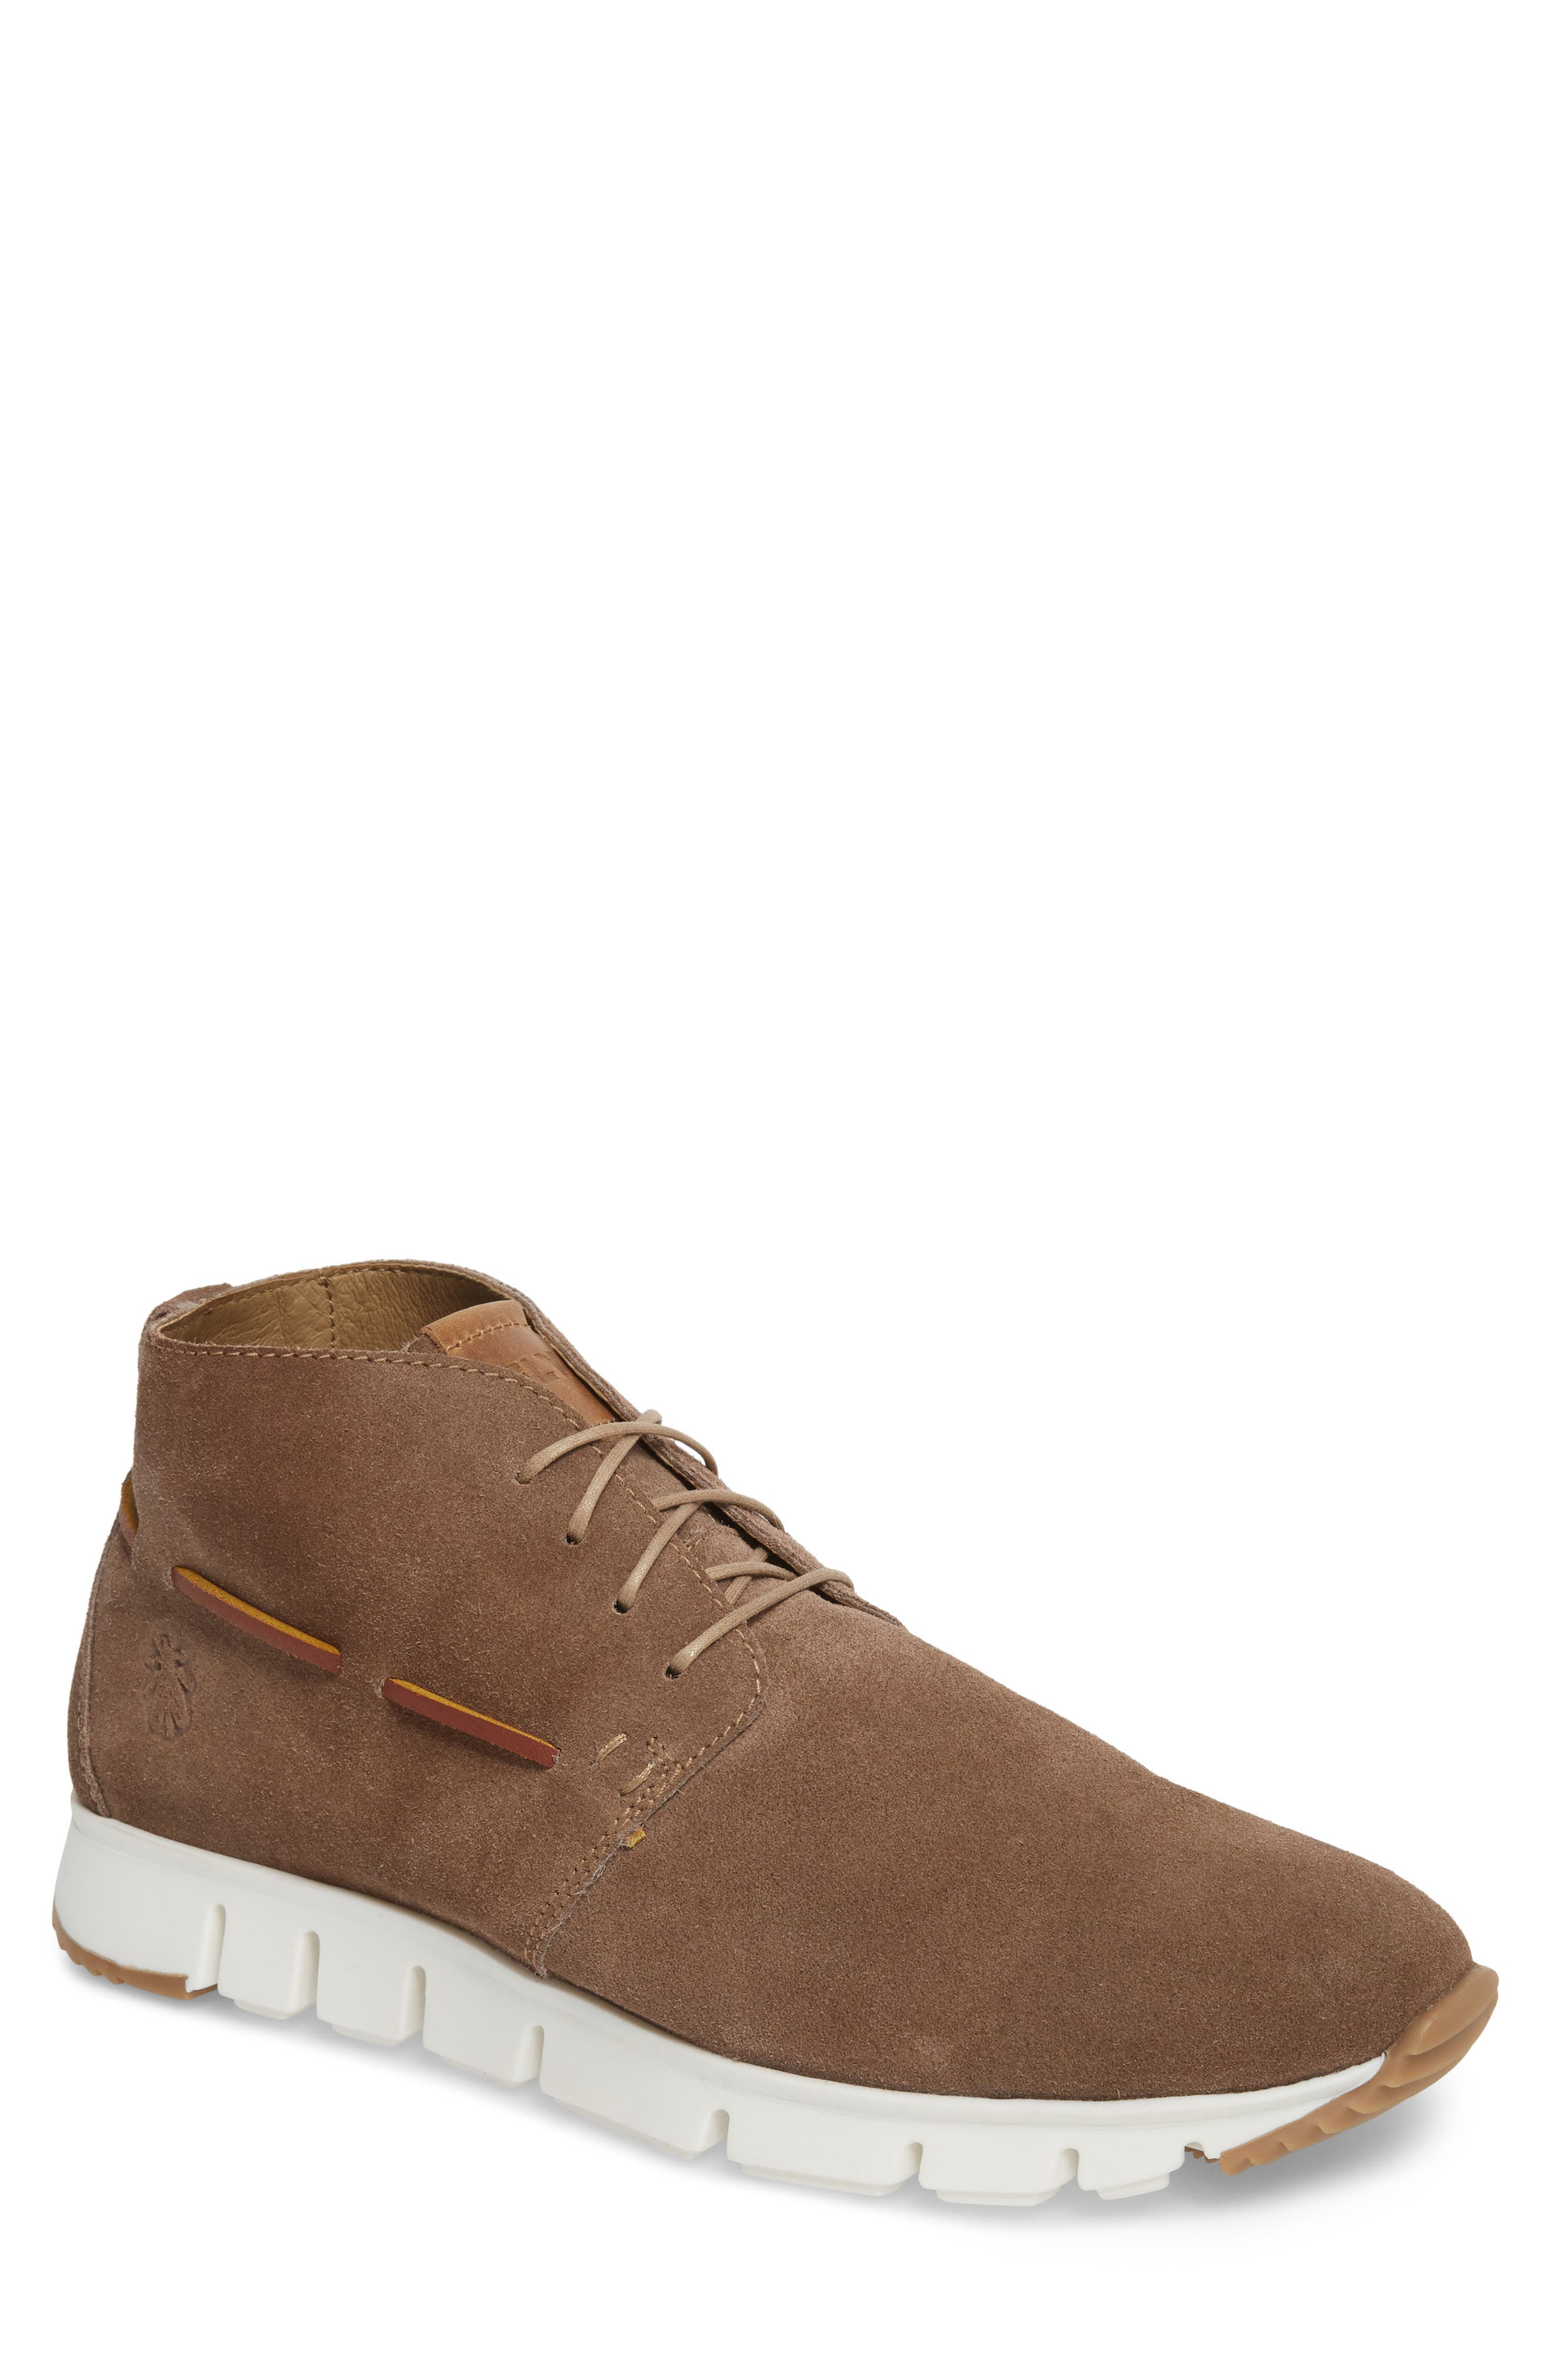 Sky High Top Sneaker,                         Main,                         color, TAUPE SUEDE